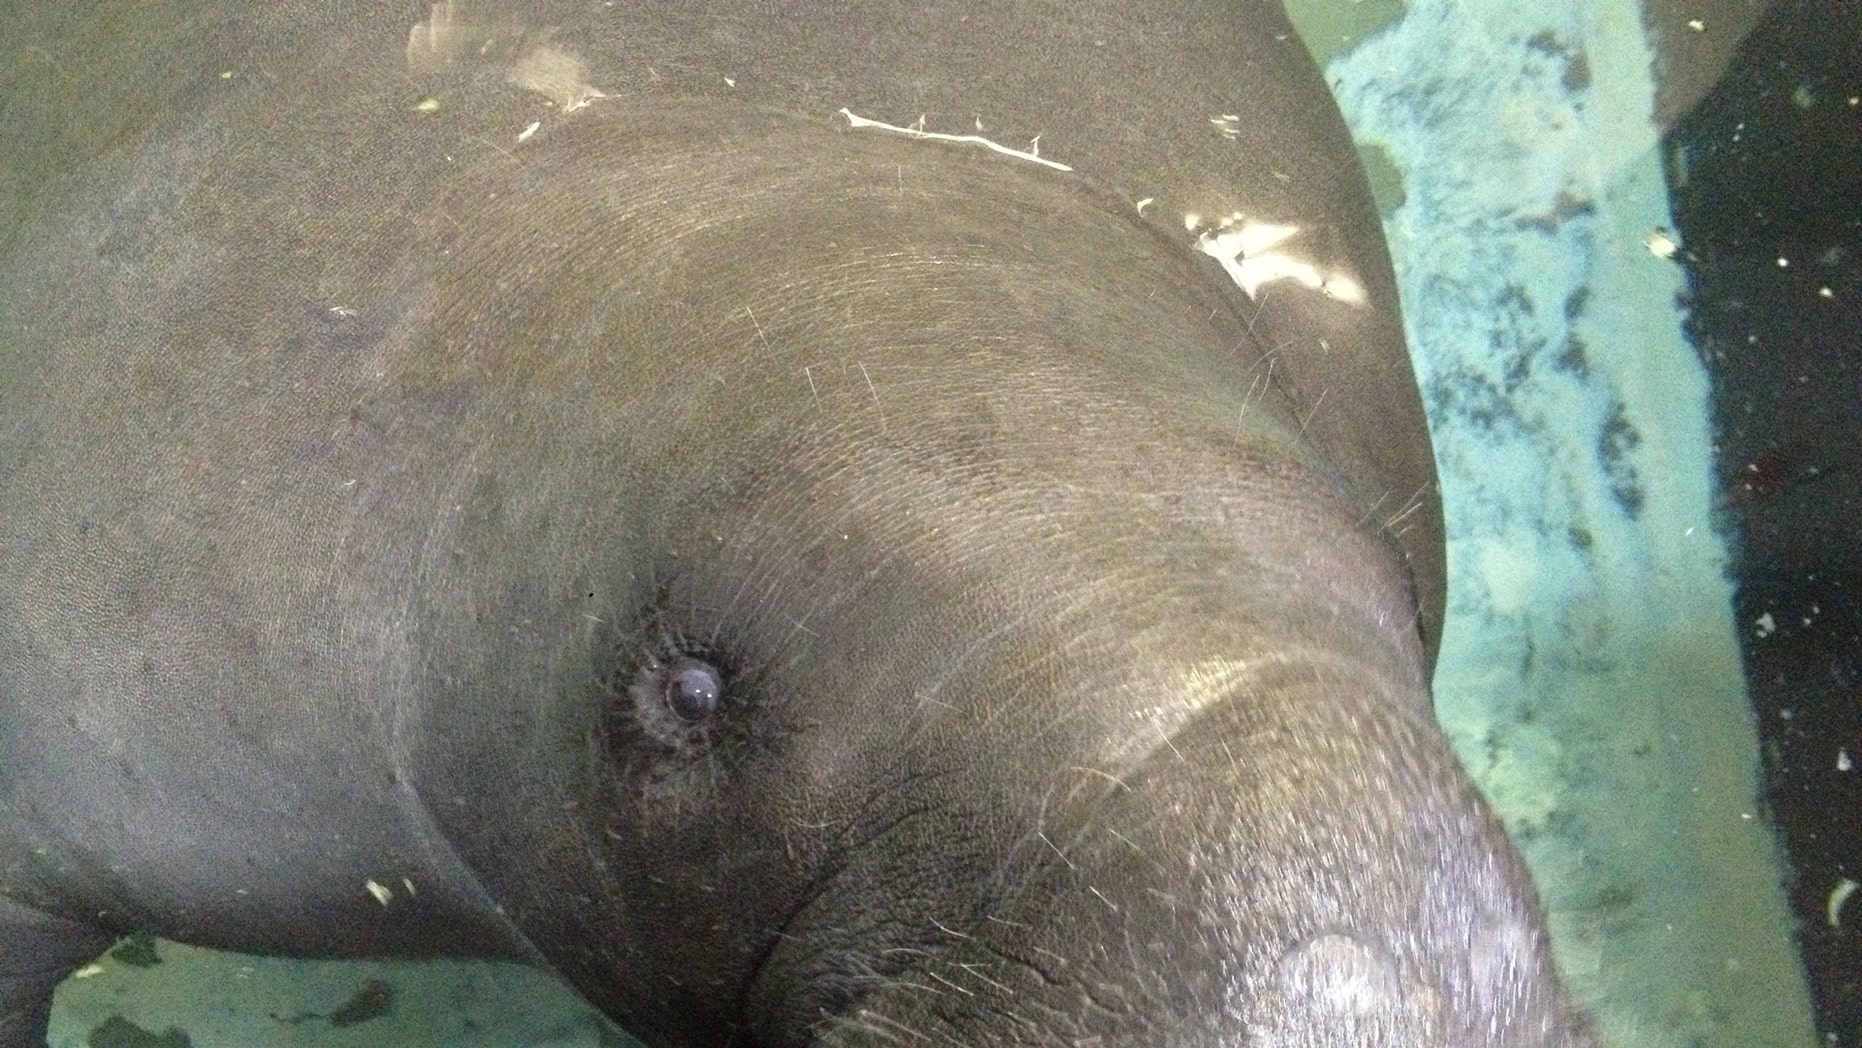 Snooty the manatee is seen in this 2013 photo in Bradenton, Fla.